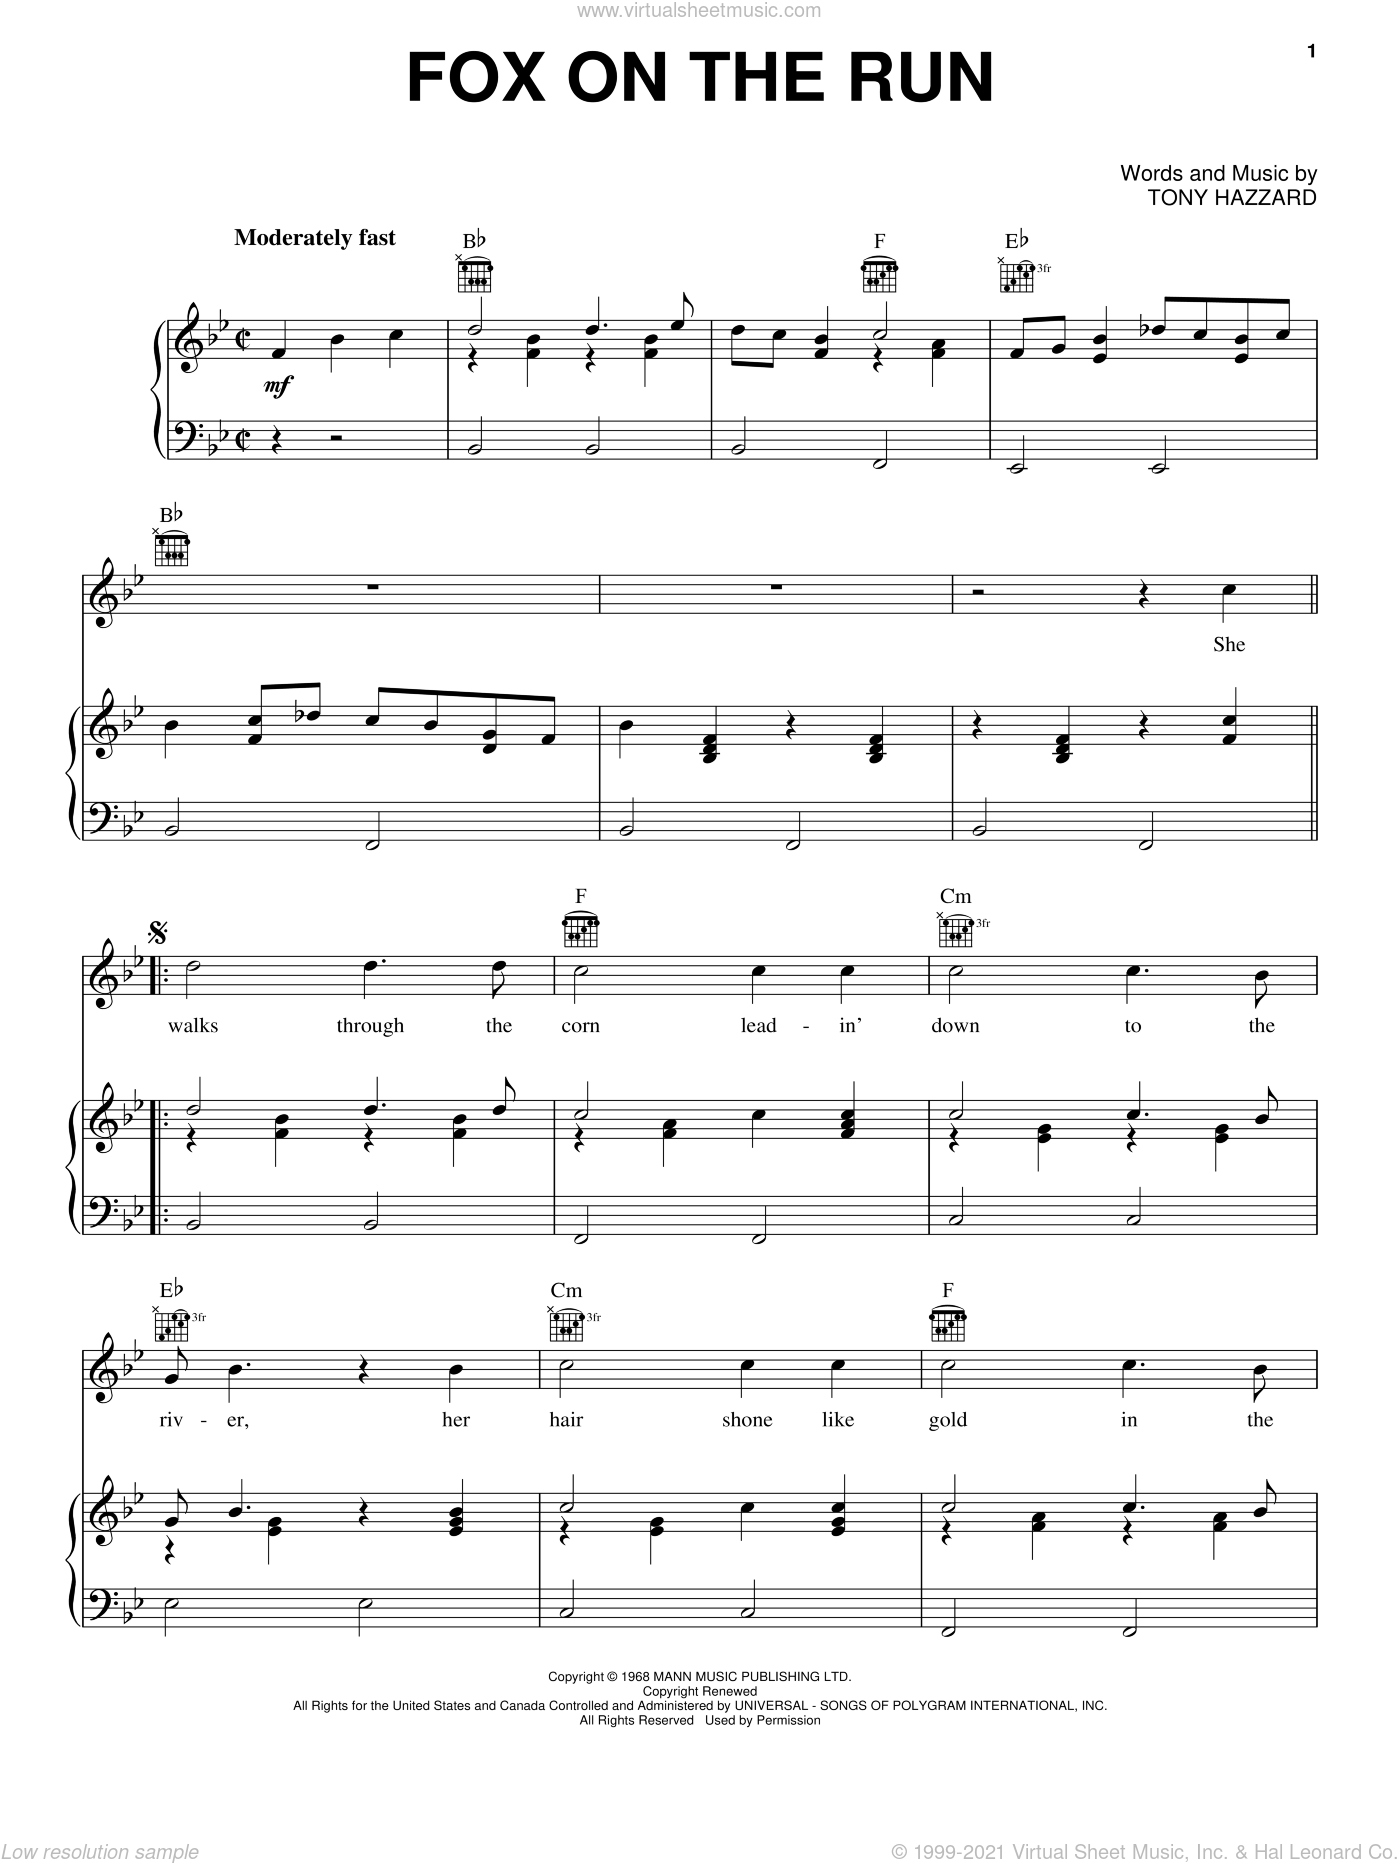 Fox On The Run sheet music for voice, piano or guitar by Tony Hazzard, intermediate skill level